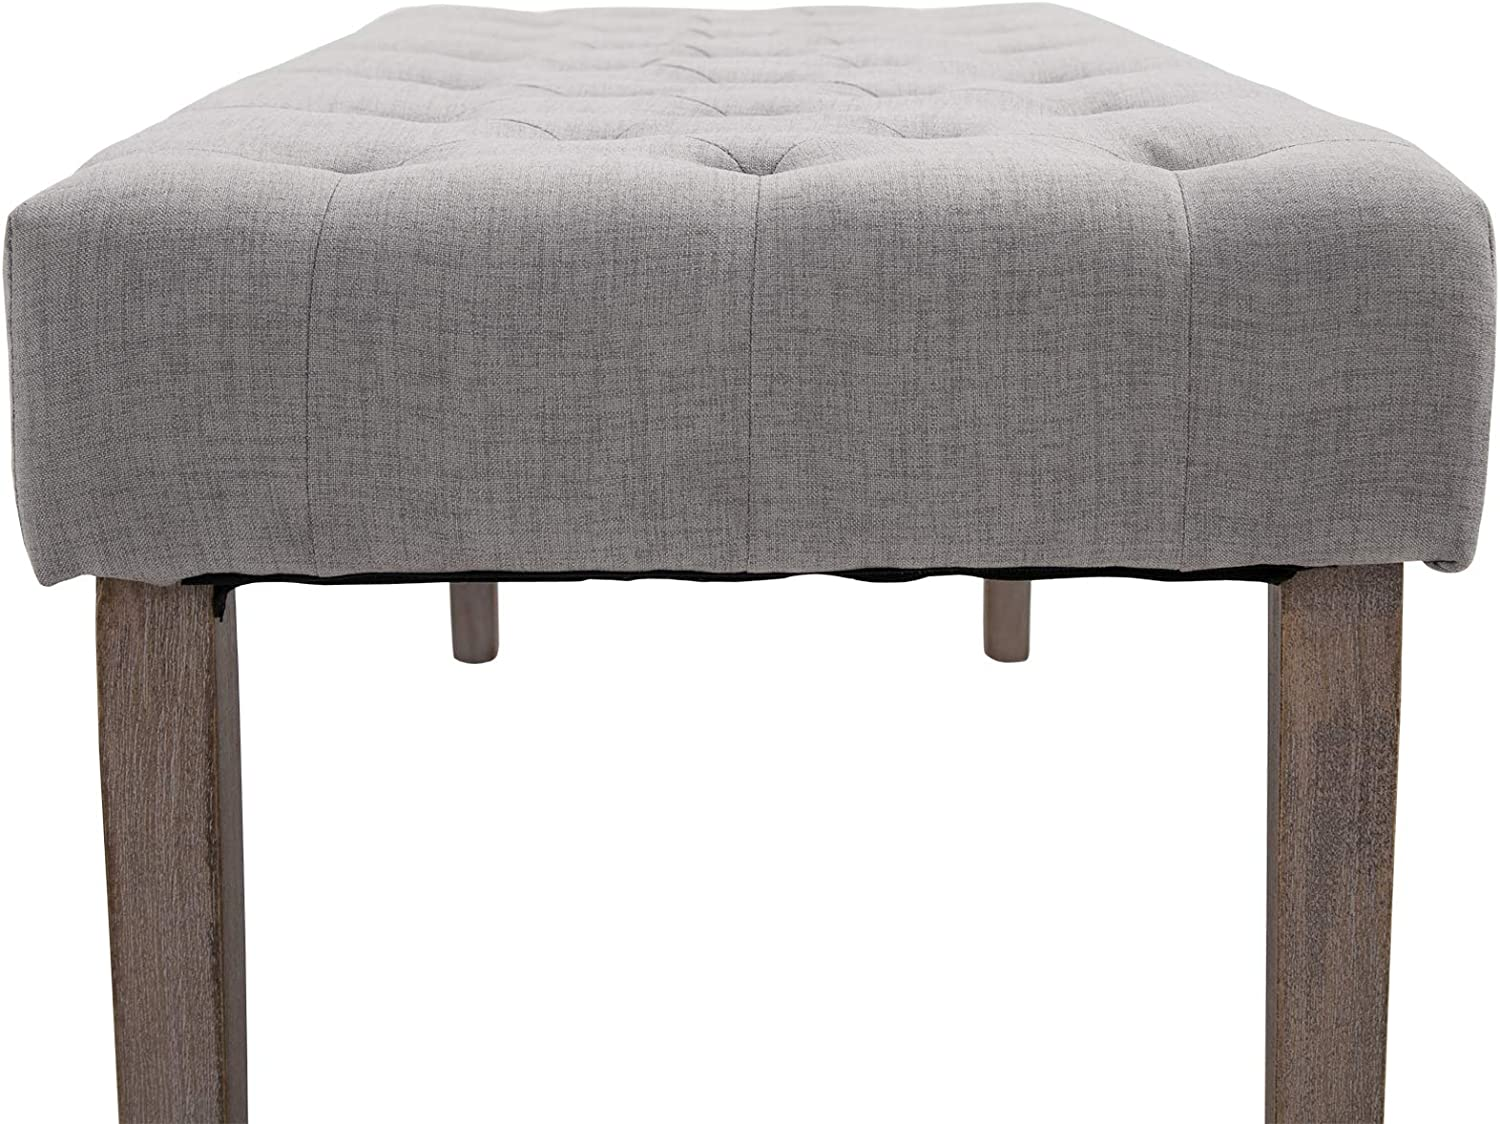 HOMCOM SimpleTufted Upholstered Ottoman Accent Bench with Soft Comfortable Cushion /& Fashionable Modern Design Grey